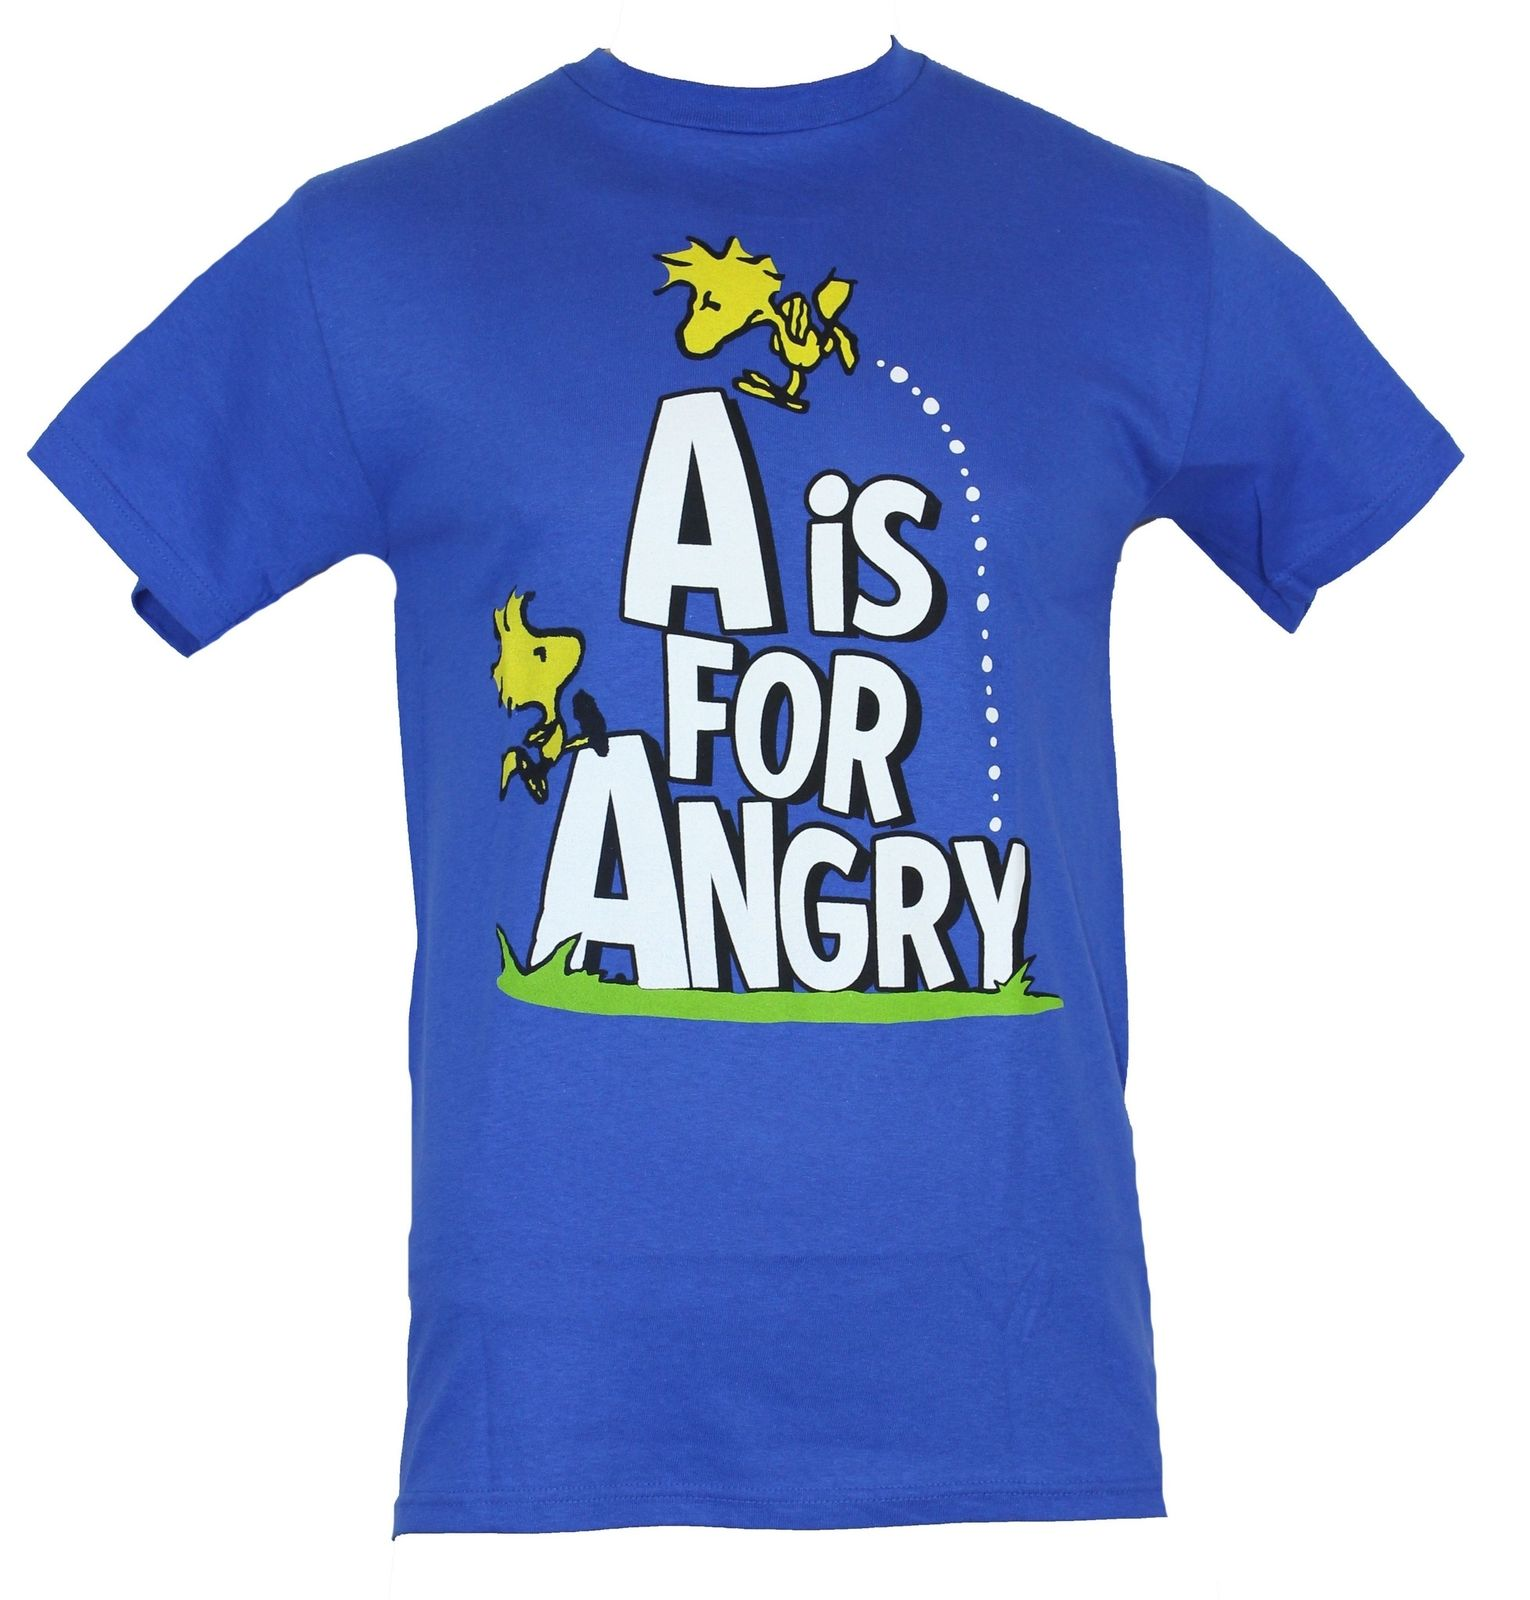 "Peanuts Mens T-Shirt - ""A is for Angry"" 2 Woodstocks Playing On Logo Image   Cool Casual pride t shirt men Unisex Fashion"